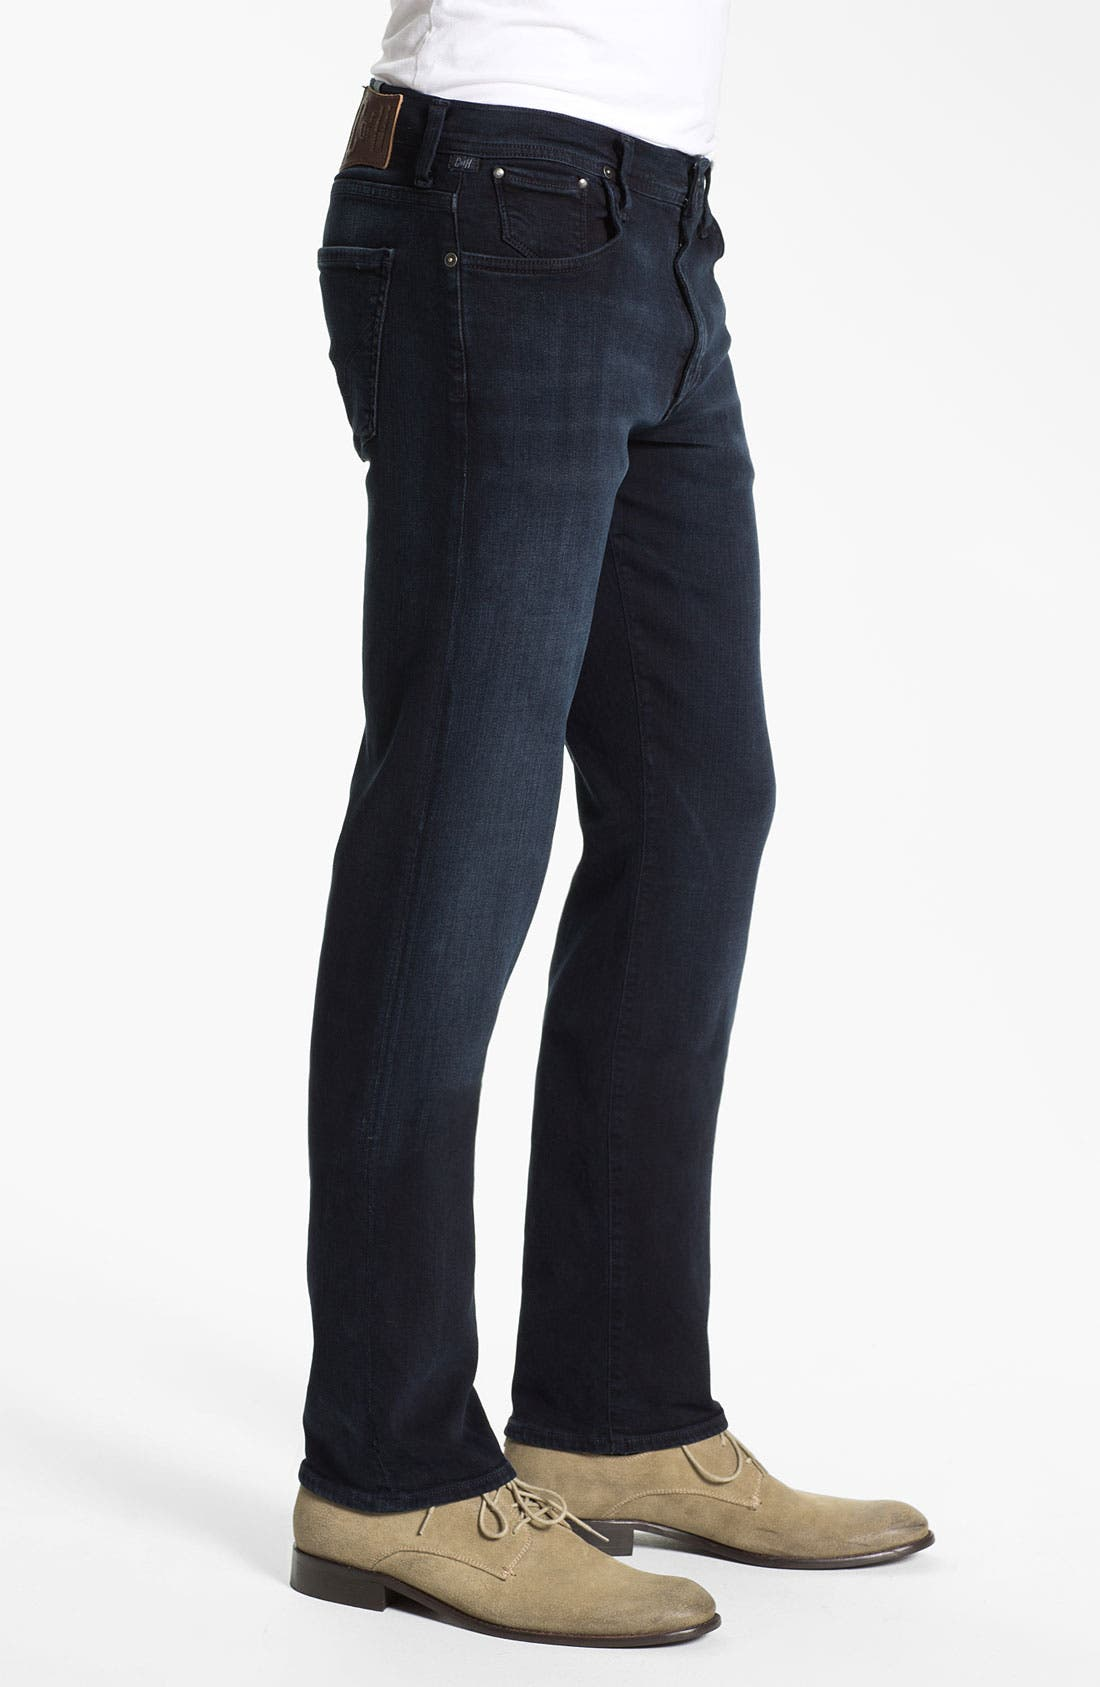 Alternate Image 3  - Citizens of Humanity 'Adonis' Comfort Slim Fit Jeans (Walker Blue)